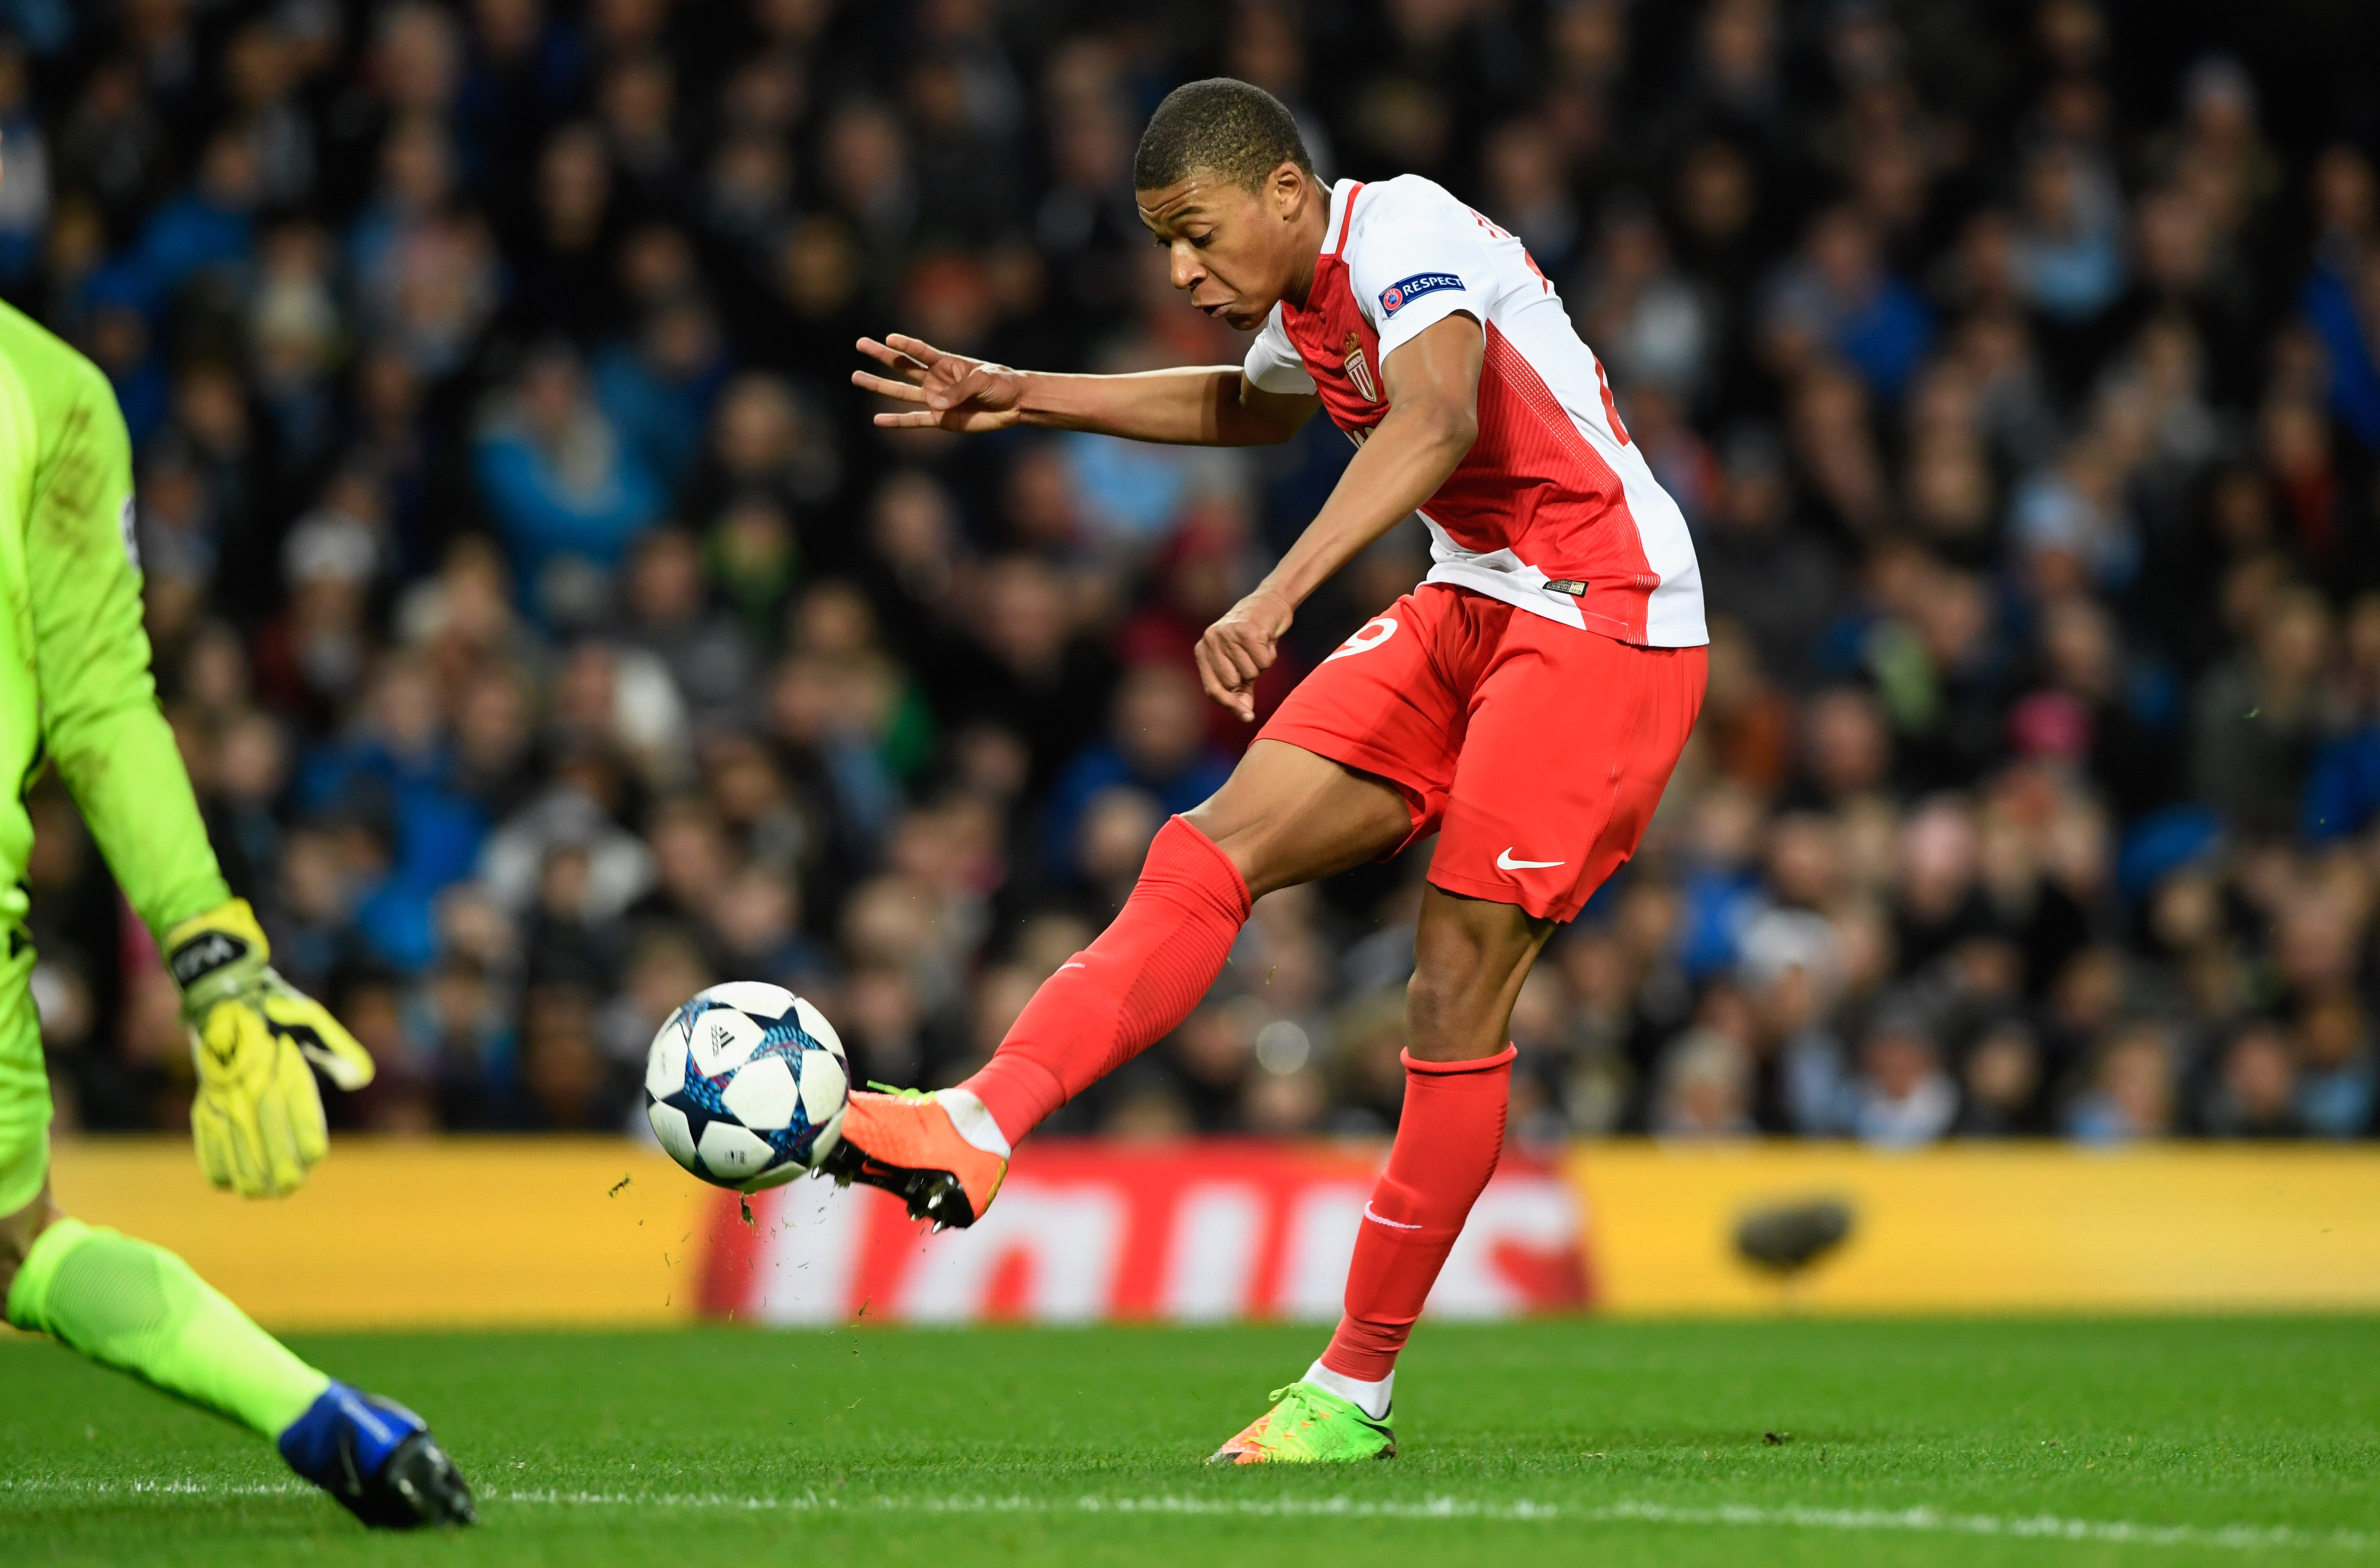 643497440-manchester-city-fc-v-as-monaco-uefa-champions-league-round-of-16-first-leg.jpg